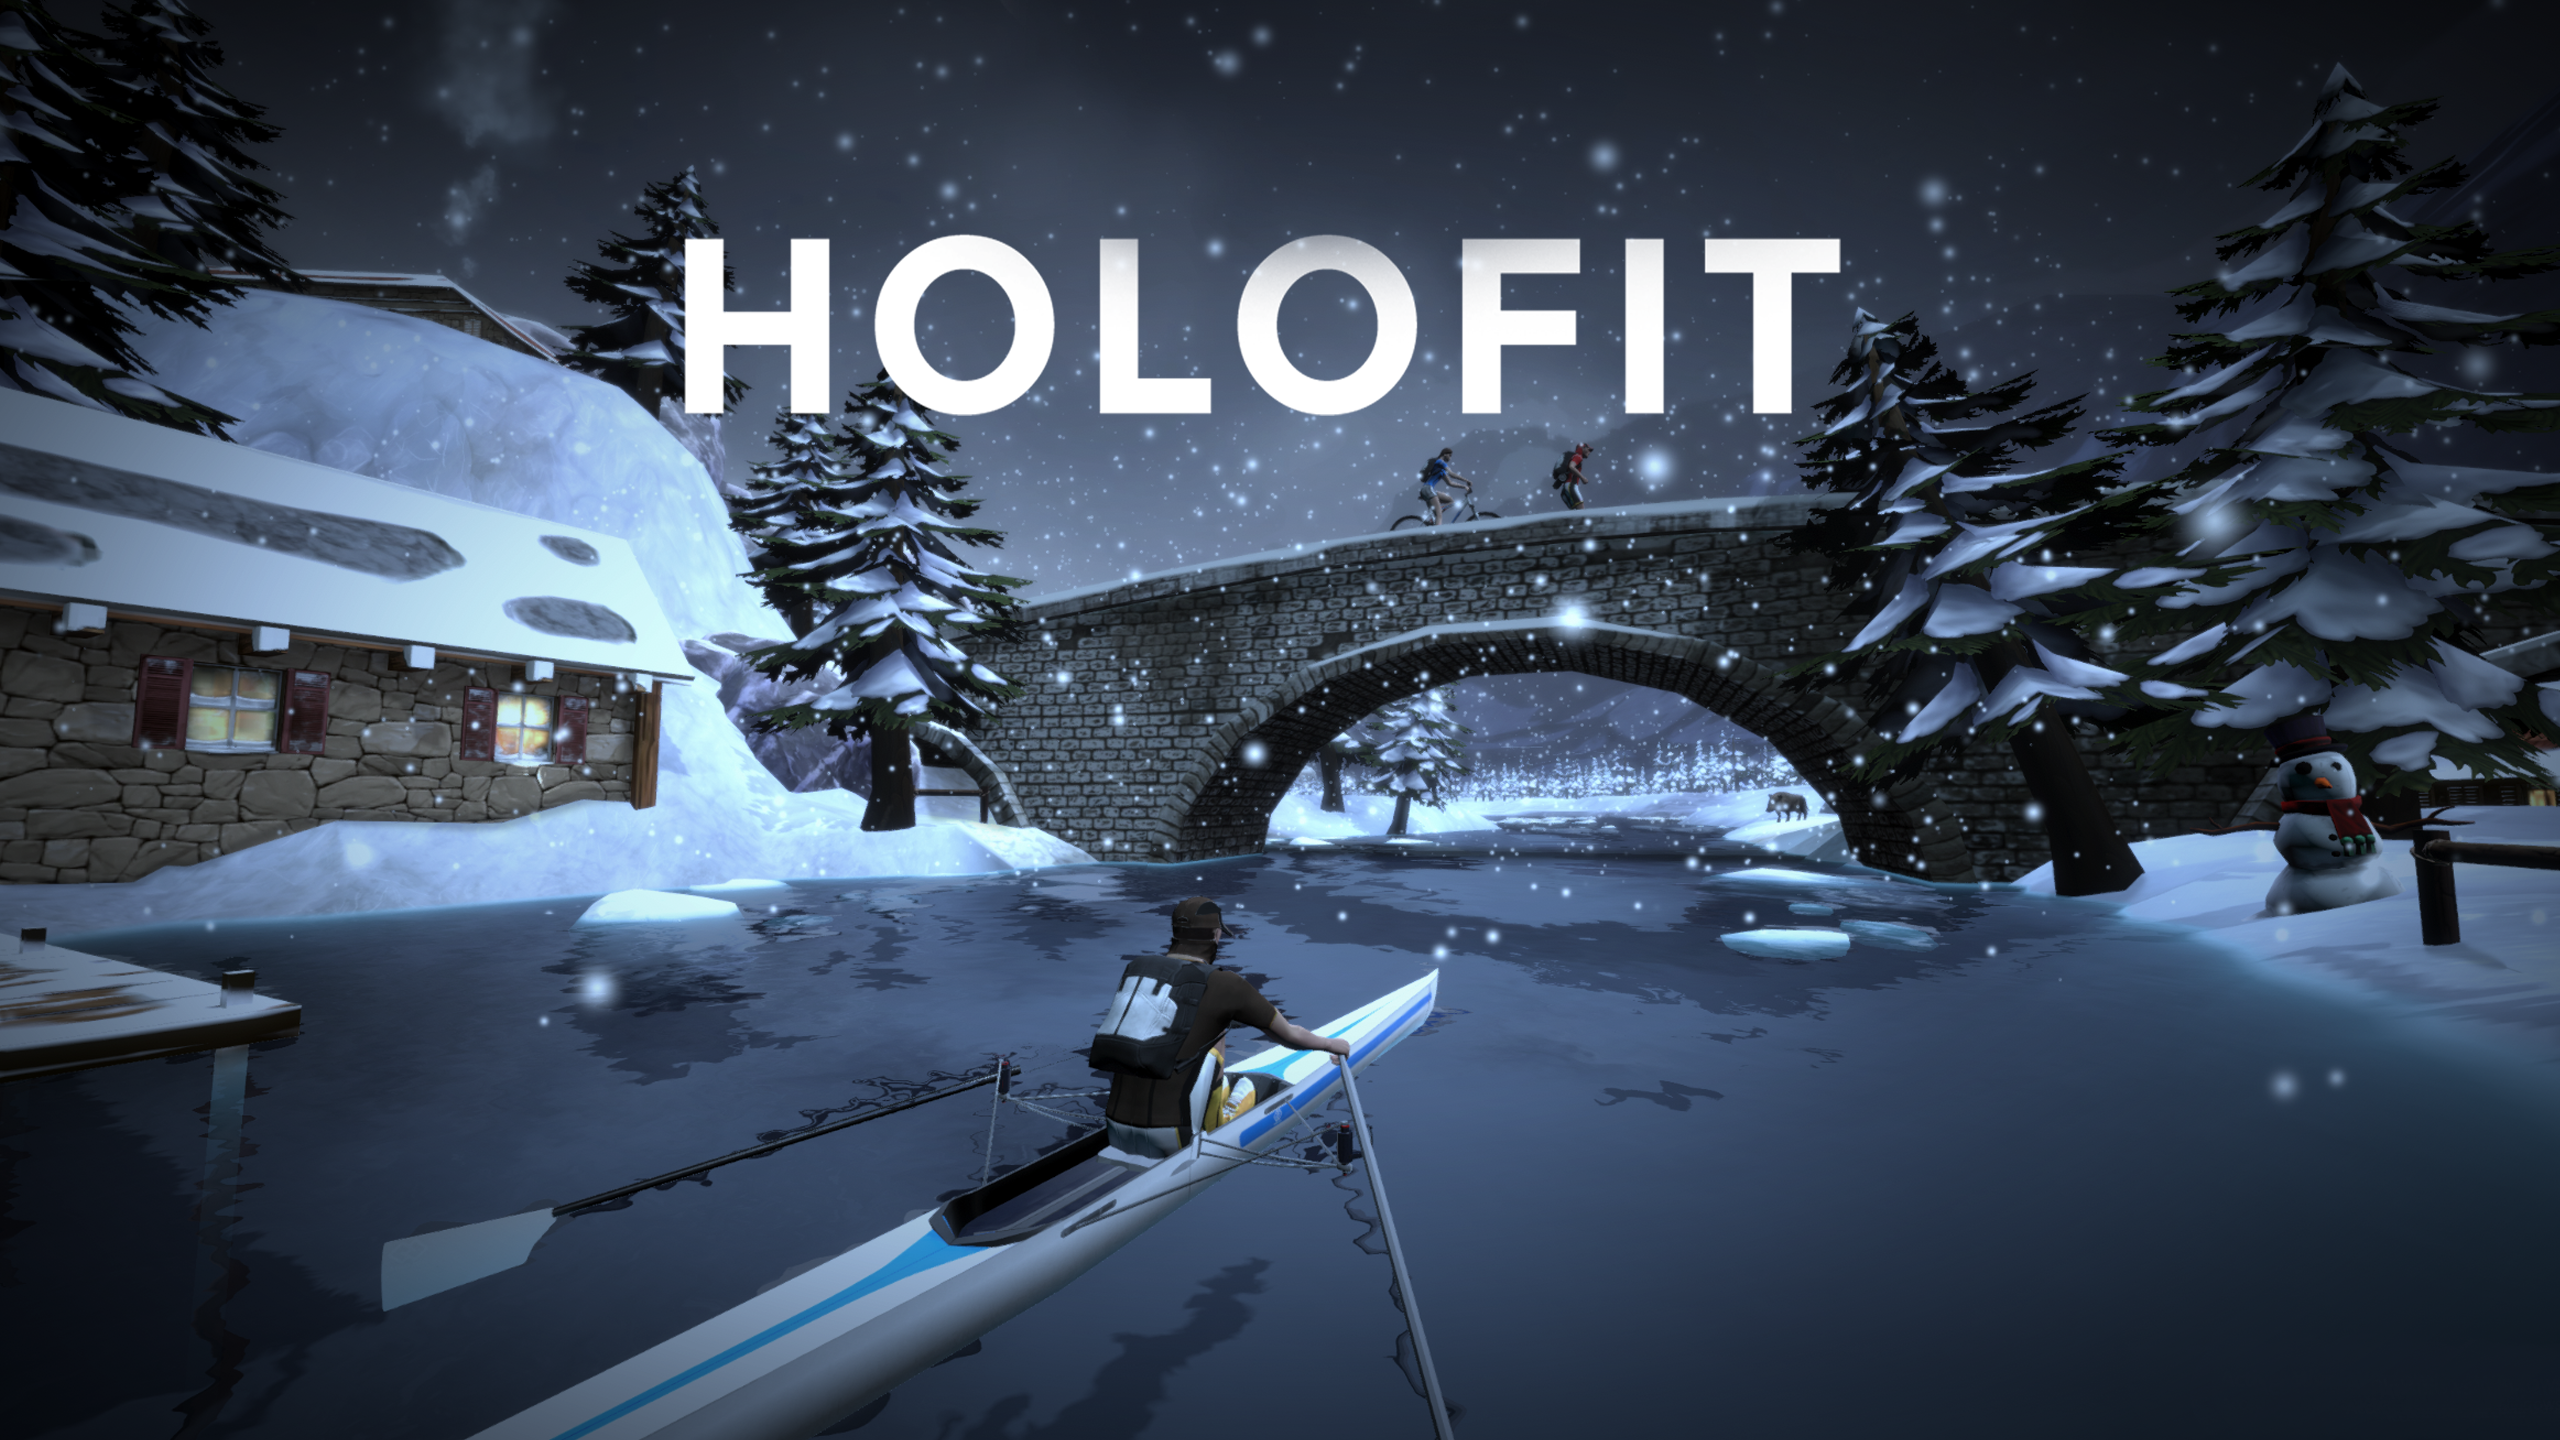 HOLOFIT is live on the Oculus Quest store